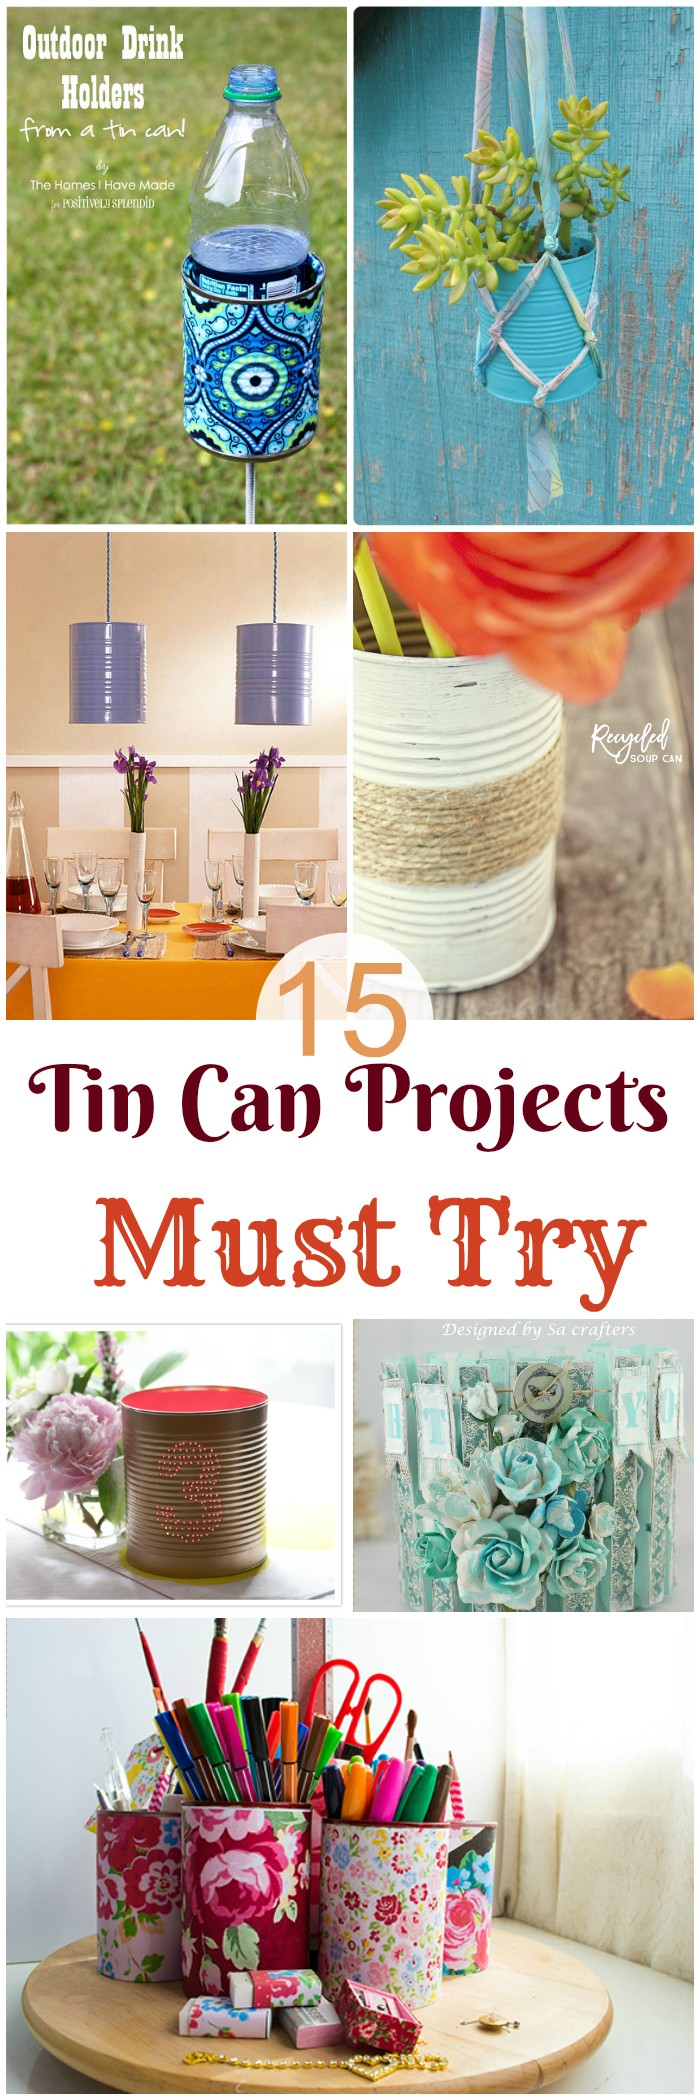 Tin Can Projects That You Must Try 1 15 0f The Best Tin Can Projects That You Must Try